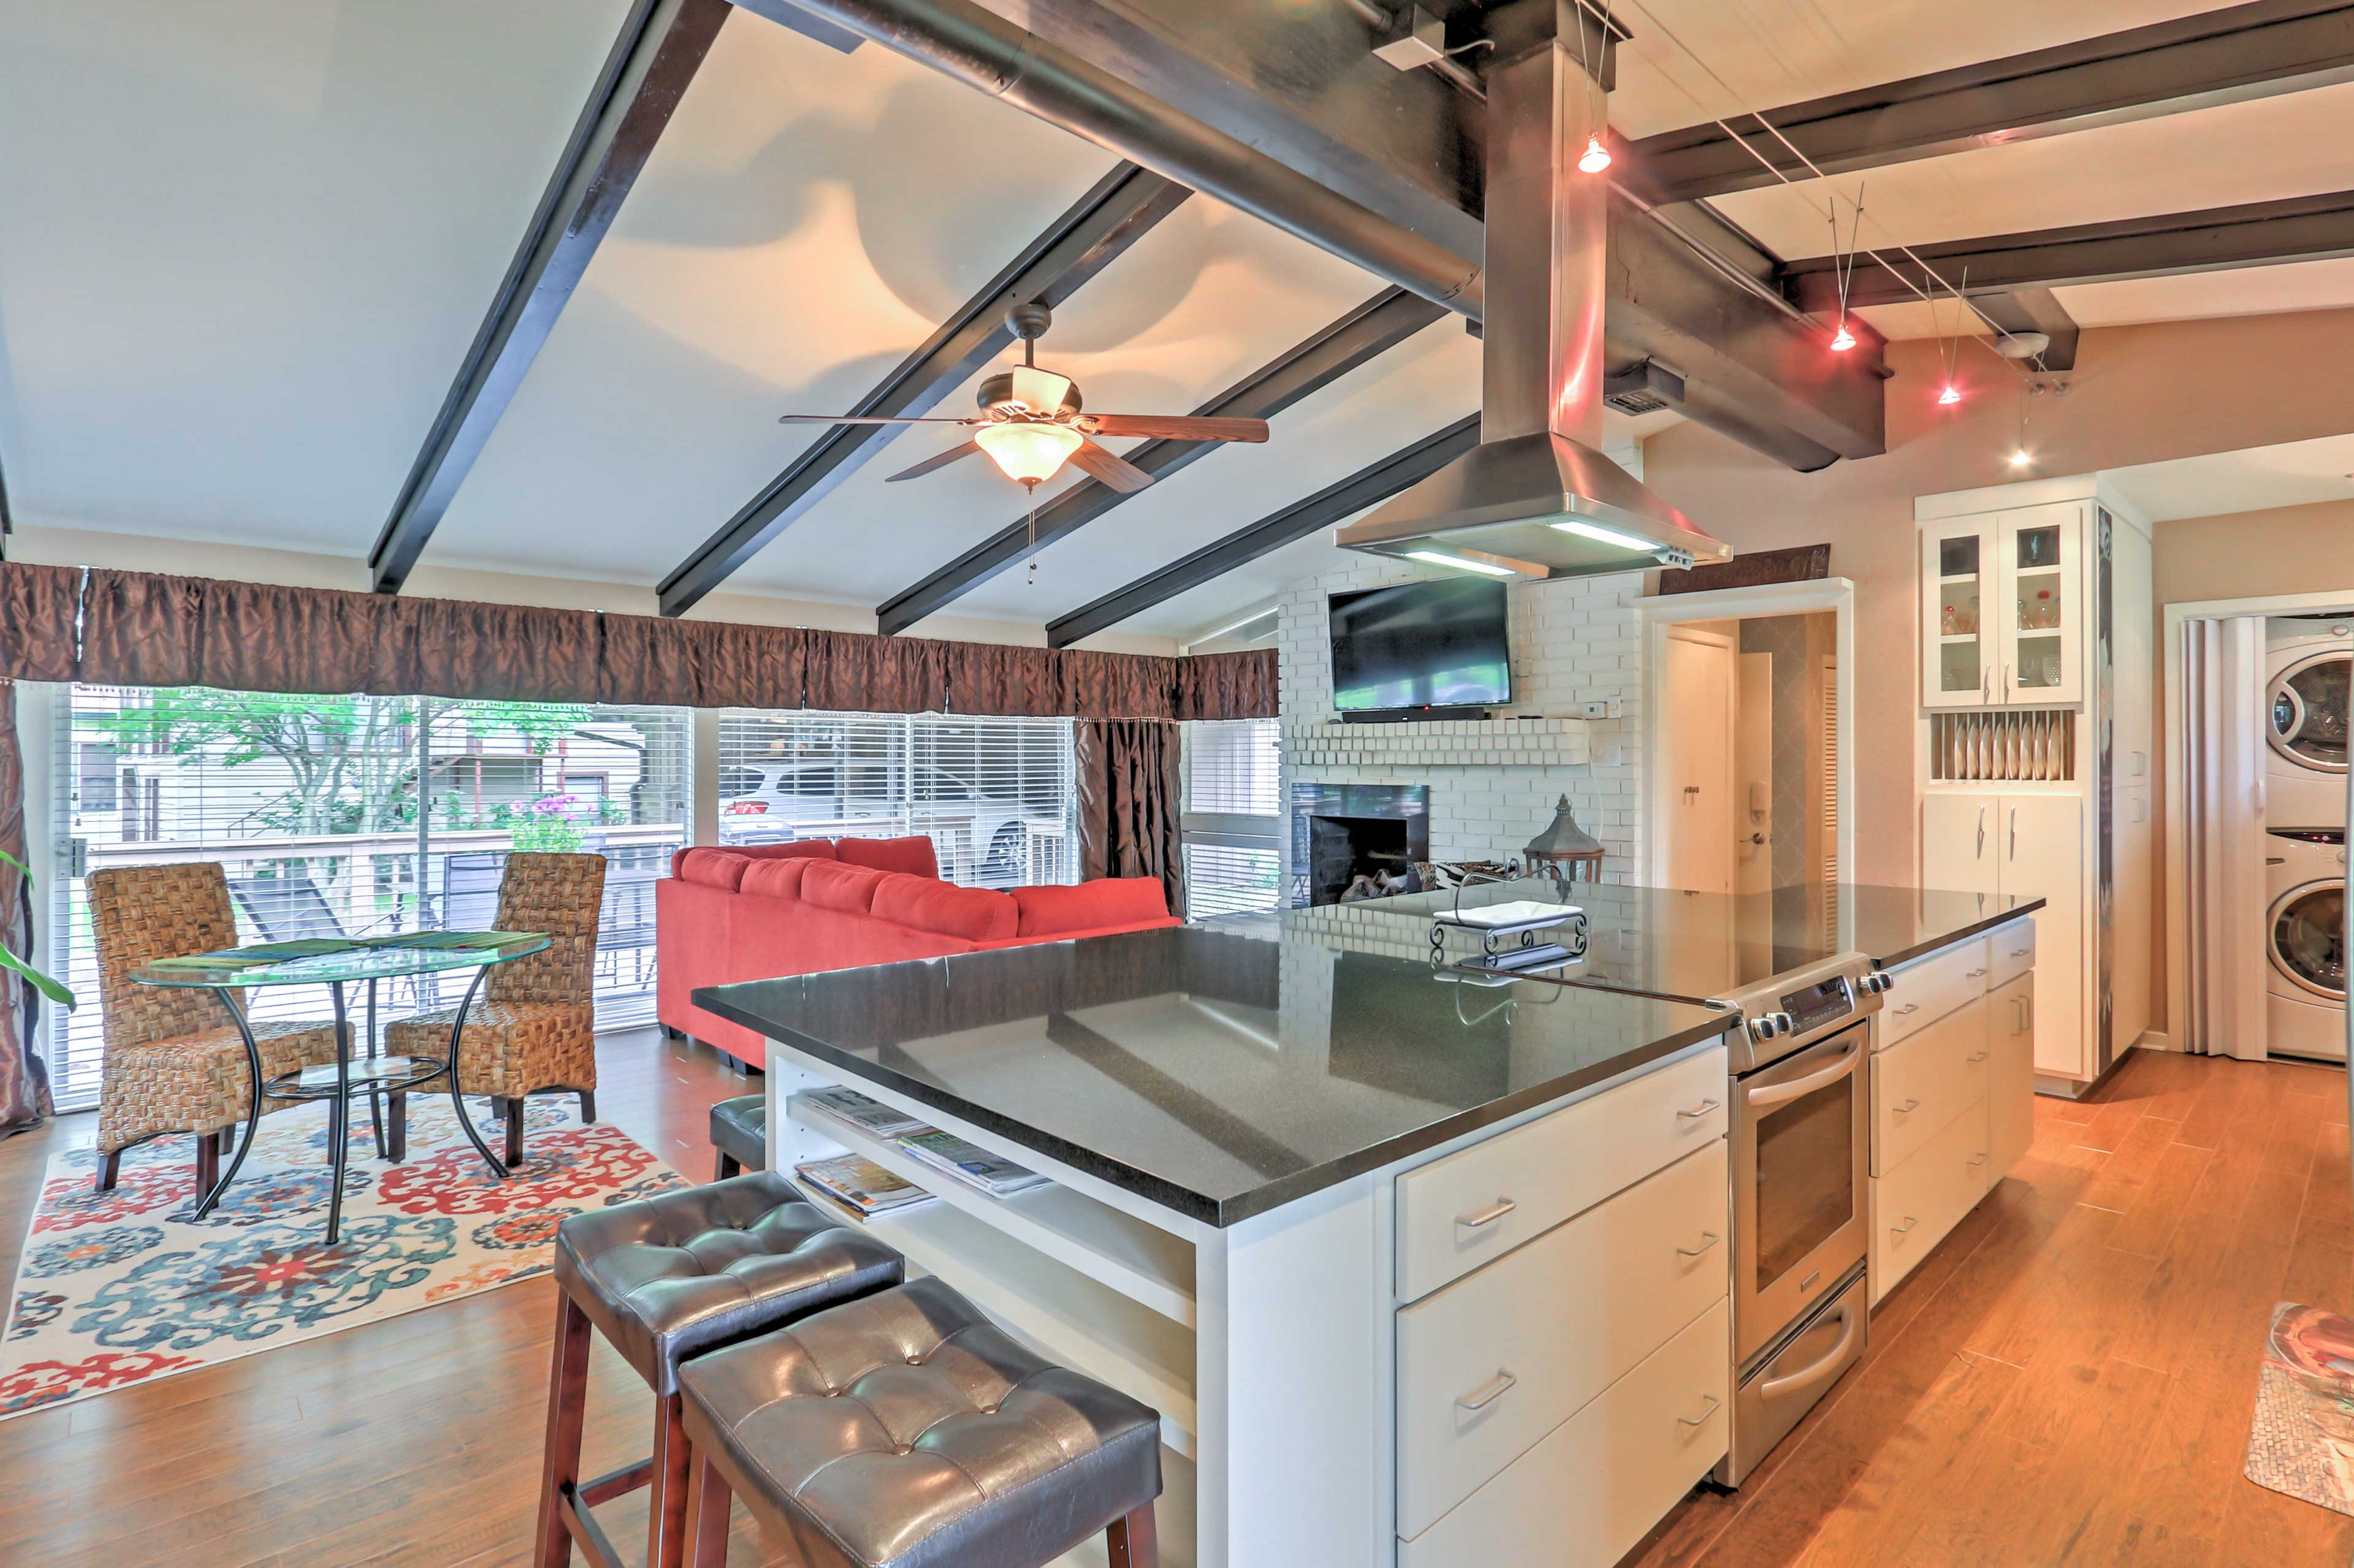 The home also features a sprawling kitchen with plenty of counterspace.